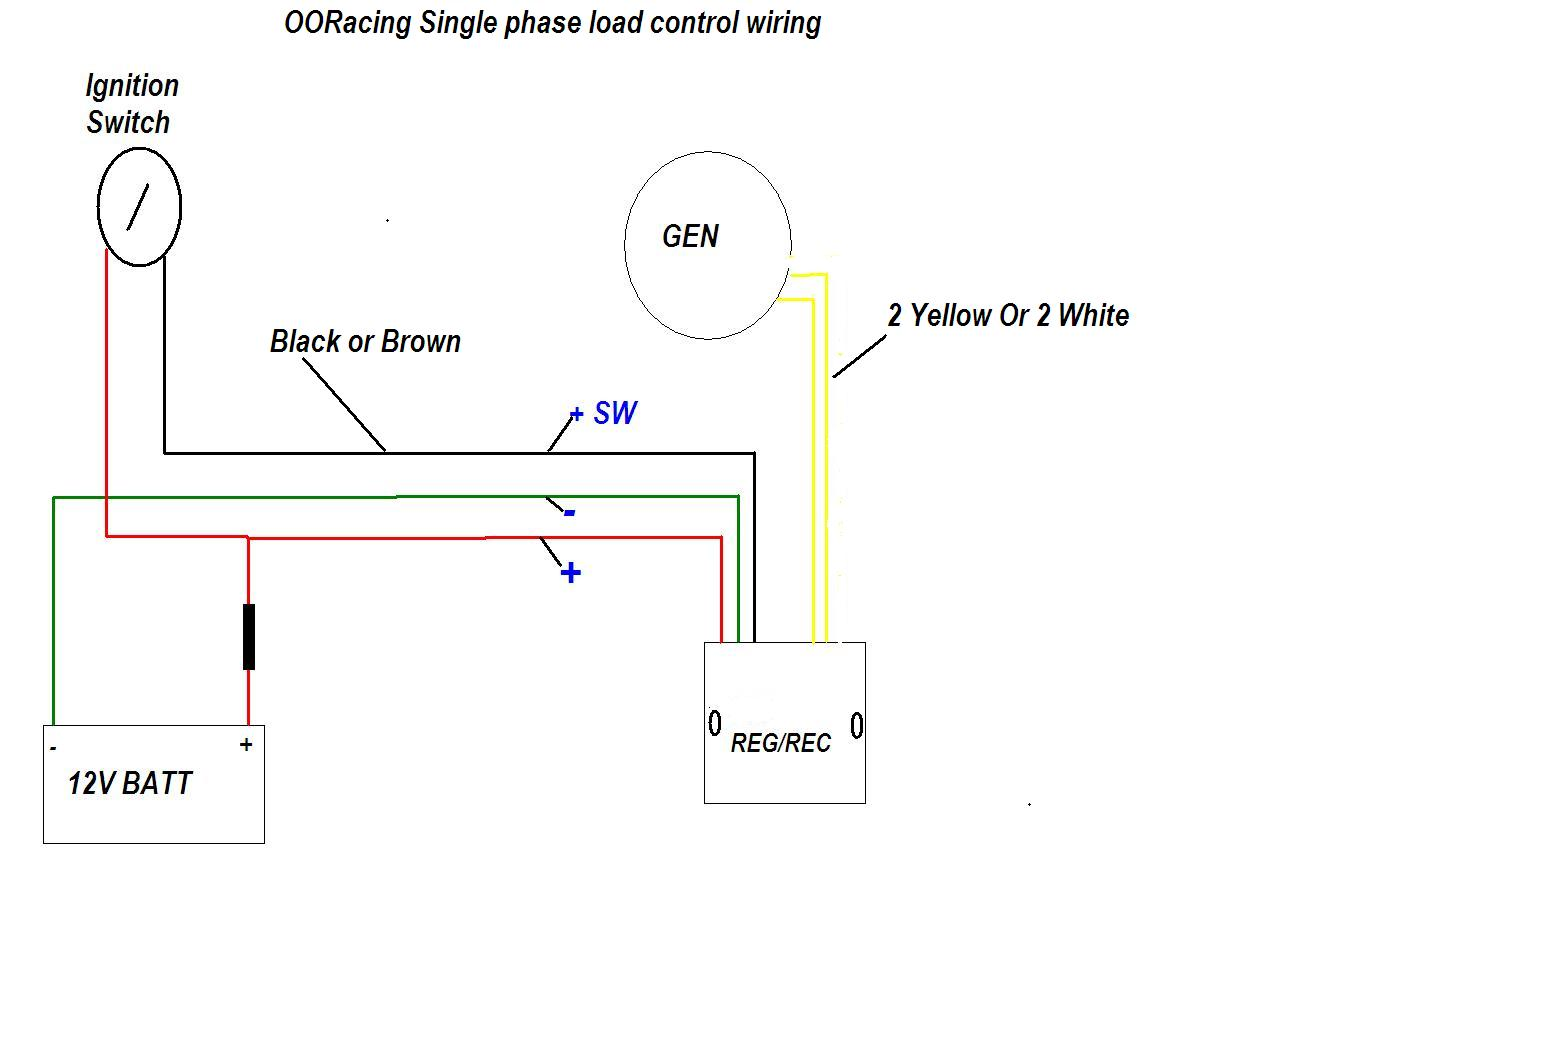 Single_phase_50W_Gen_wiring?resize=665%2C443&ssl=1 amazing 125 pit bike wiring diagram images wiring schematic Pit Bike Racing Rules at gsmportal.co